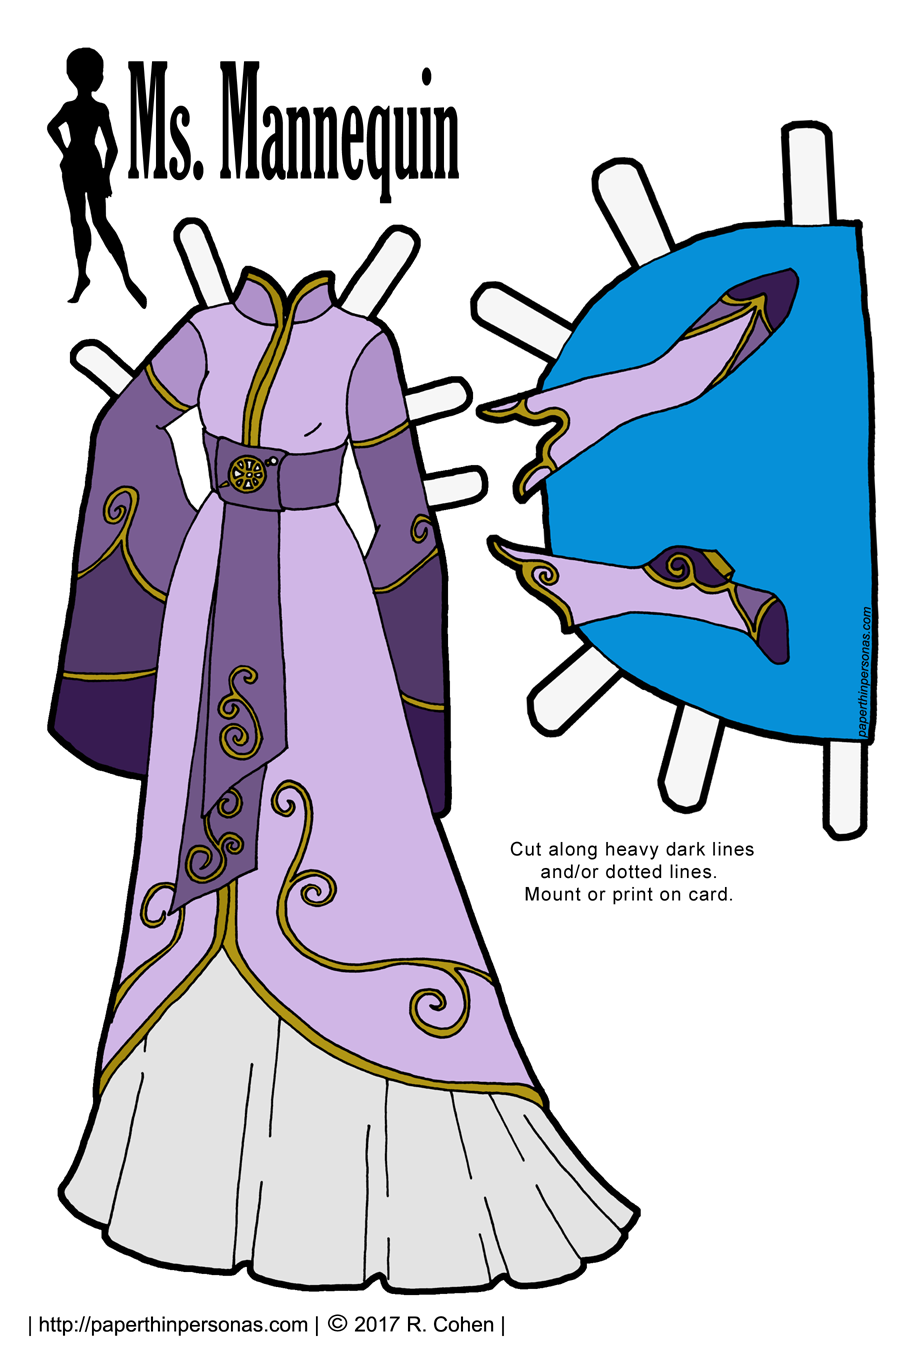 An Elven Fantasy Gown for the Ms. Mannequin Paper Dolls